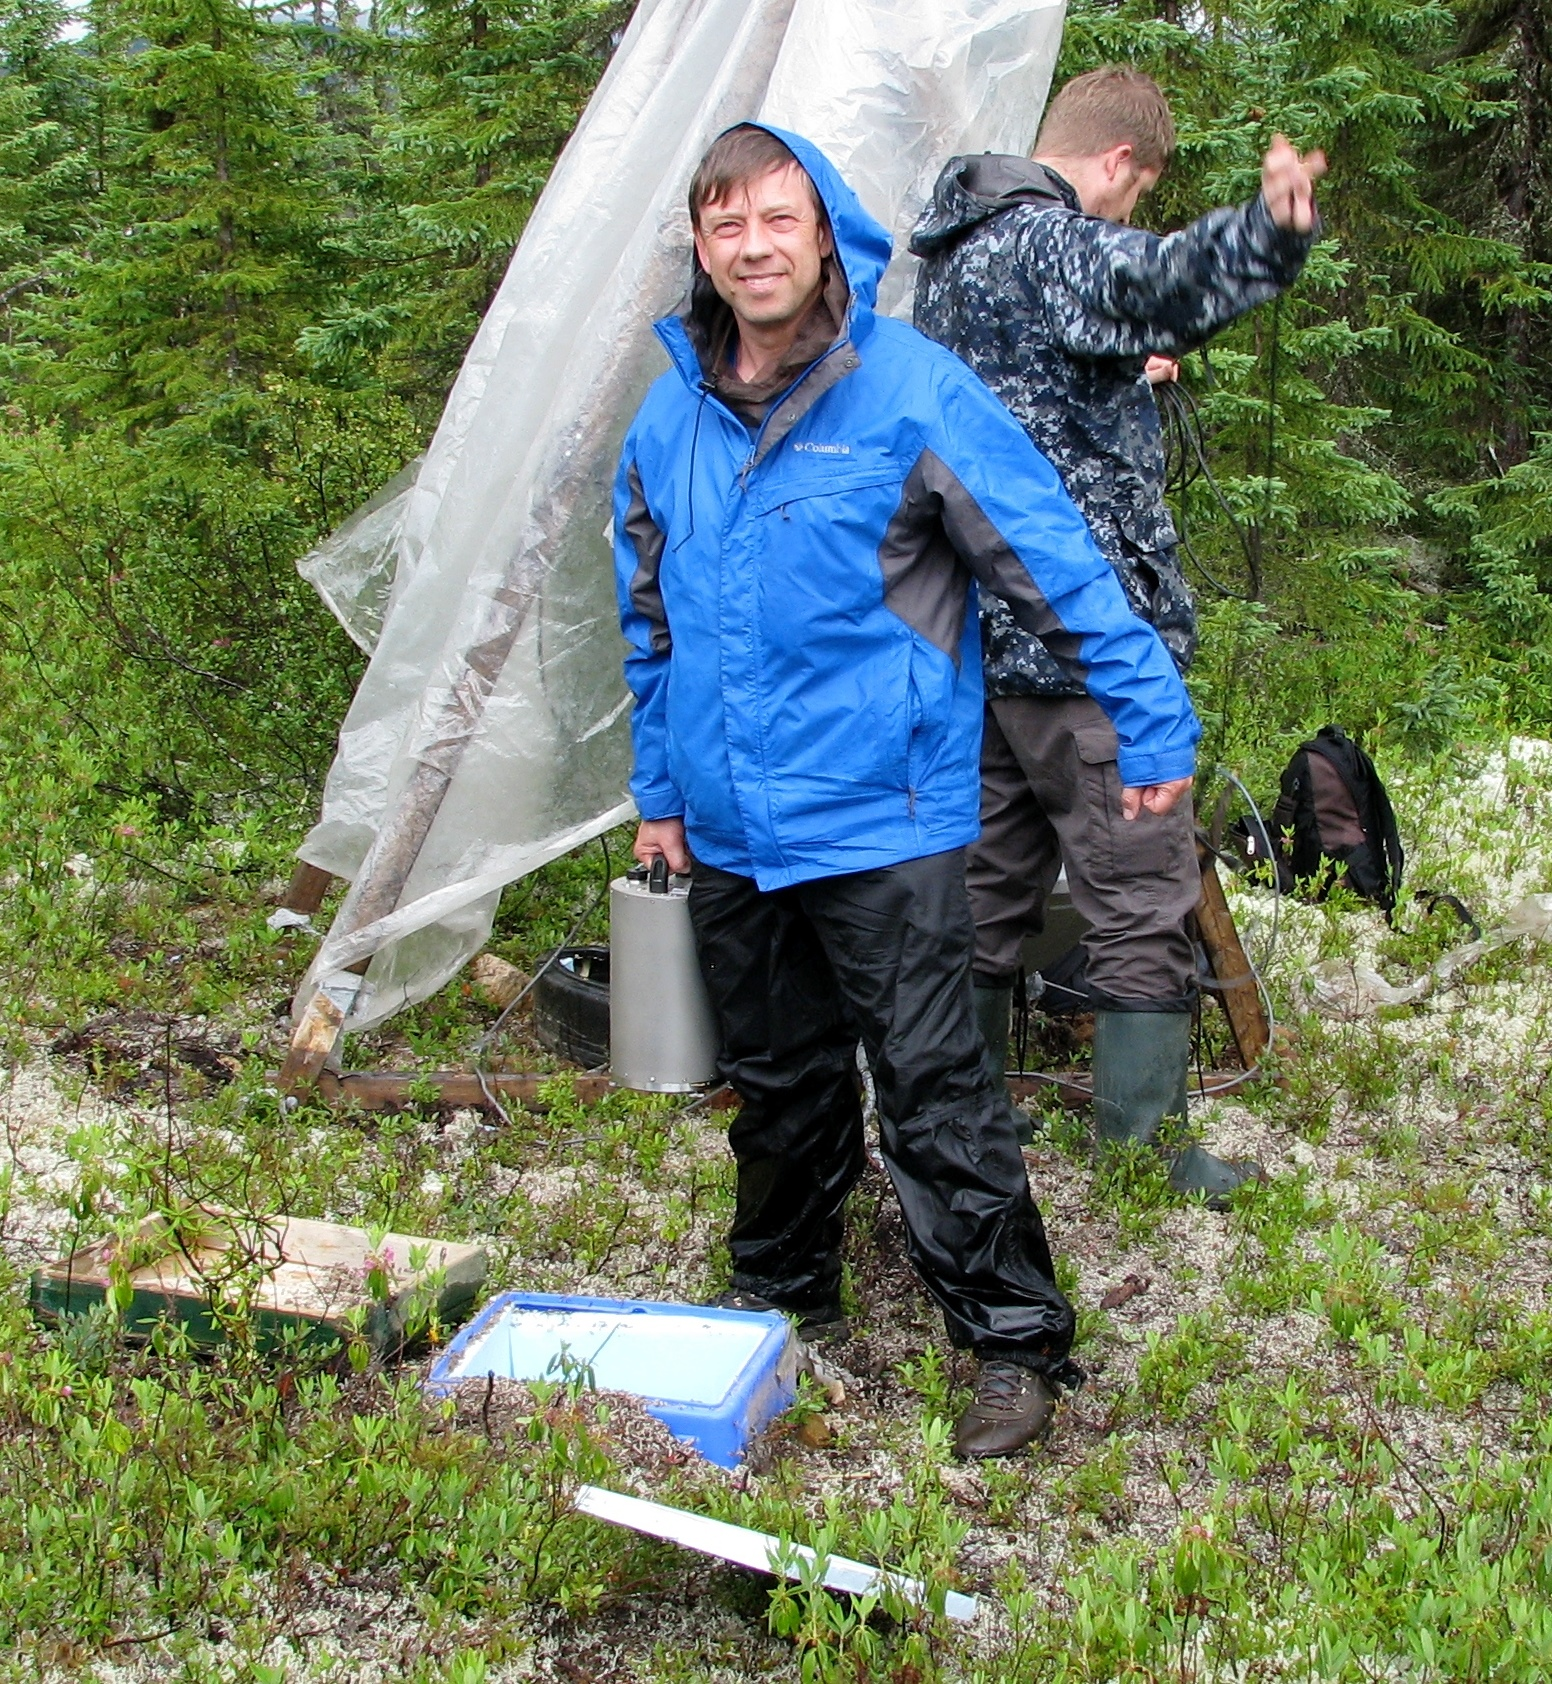 Professor Vadim Levin (front) and Rutgers Geology major Michael Klaser recover a portable seismic observatory in the woods in central Quebec. Photo: Courtesy of Vadim Levin/Rutgers University-New Brunswick